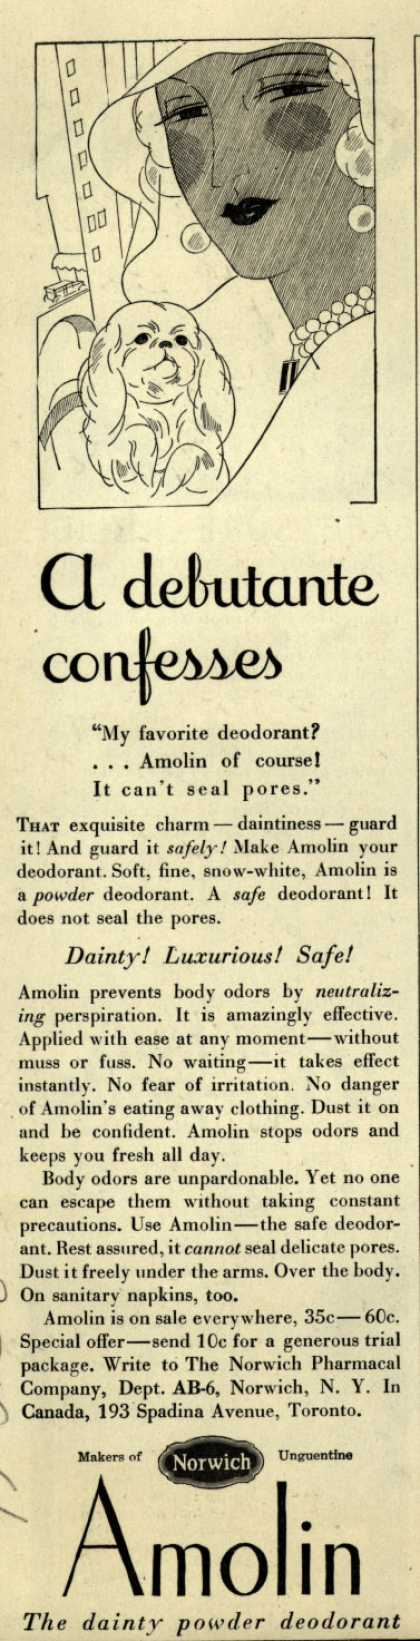 Norwich Pharmacal Co.'s Amolin Deodorant Powder – A debutante confesses (1930)